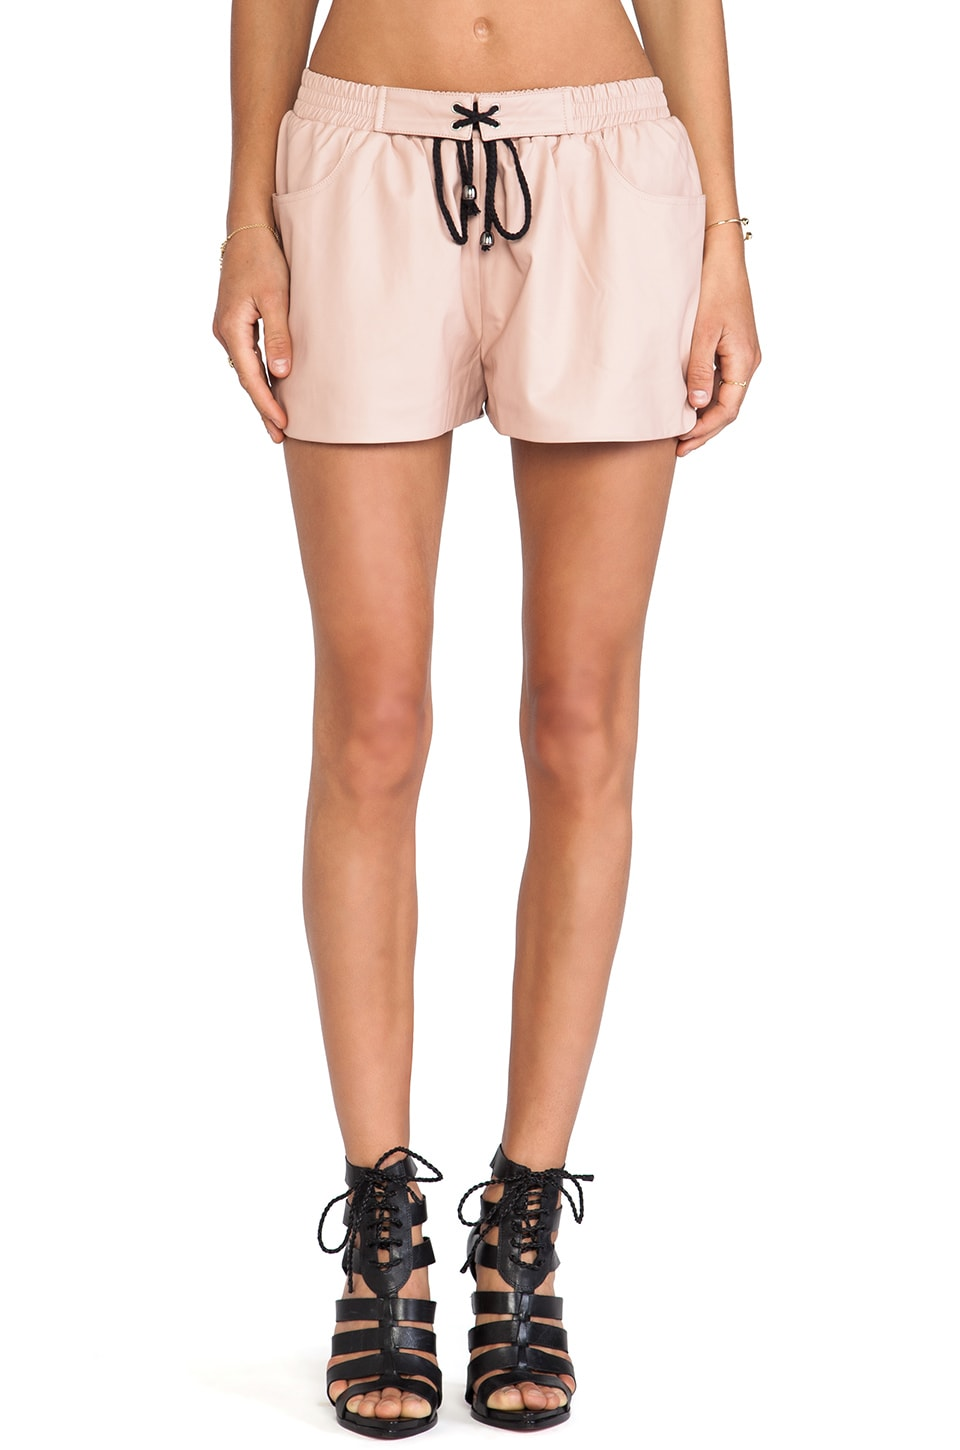 BLQ BASIQ BLQ Basics Faux Leather Shorts in Nude